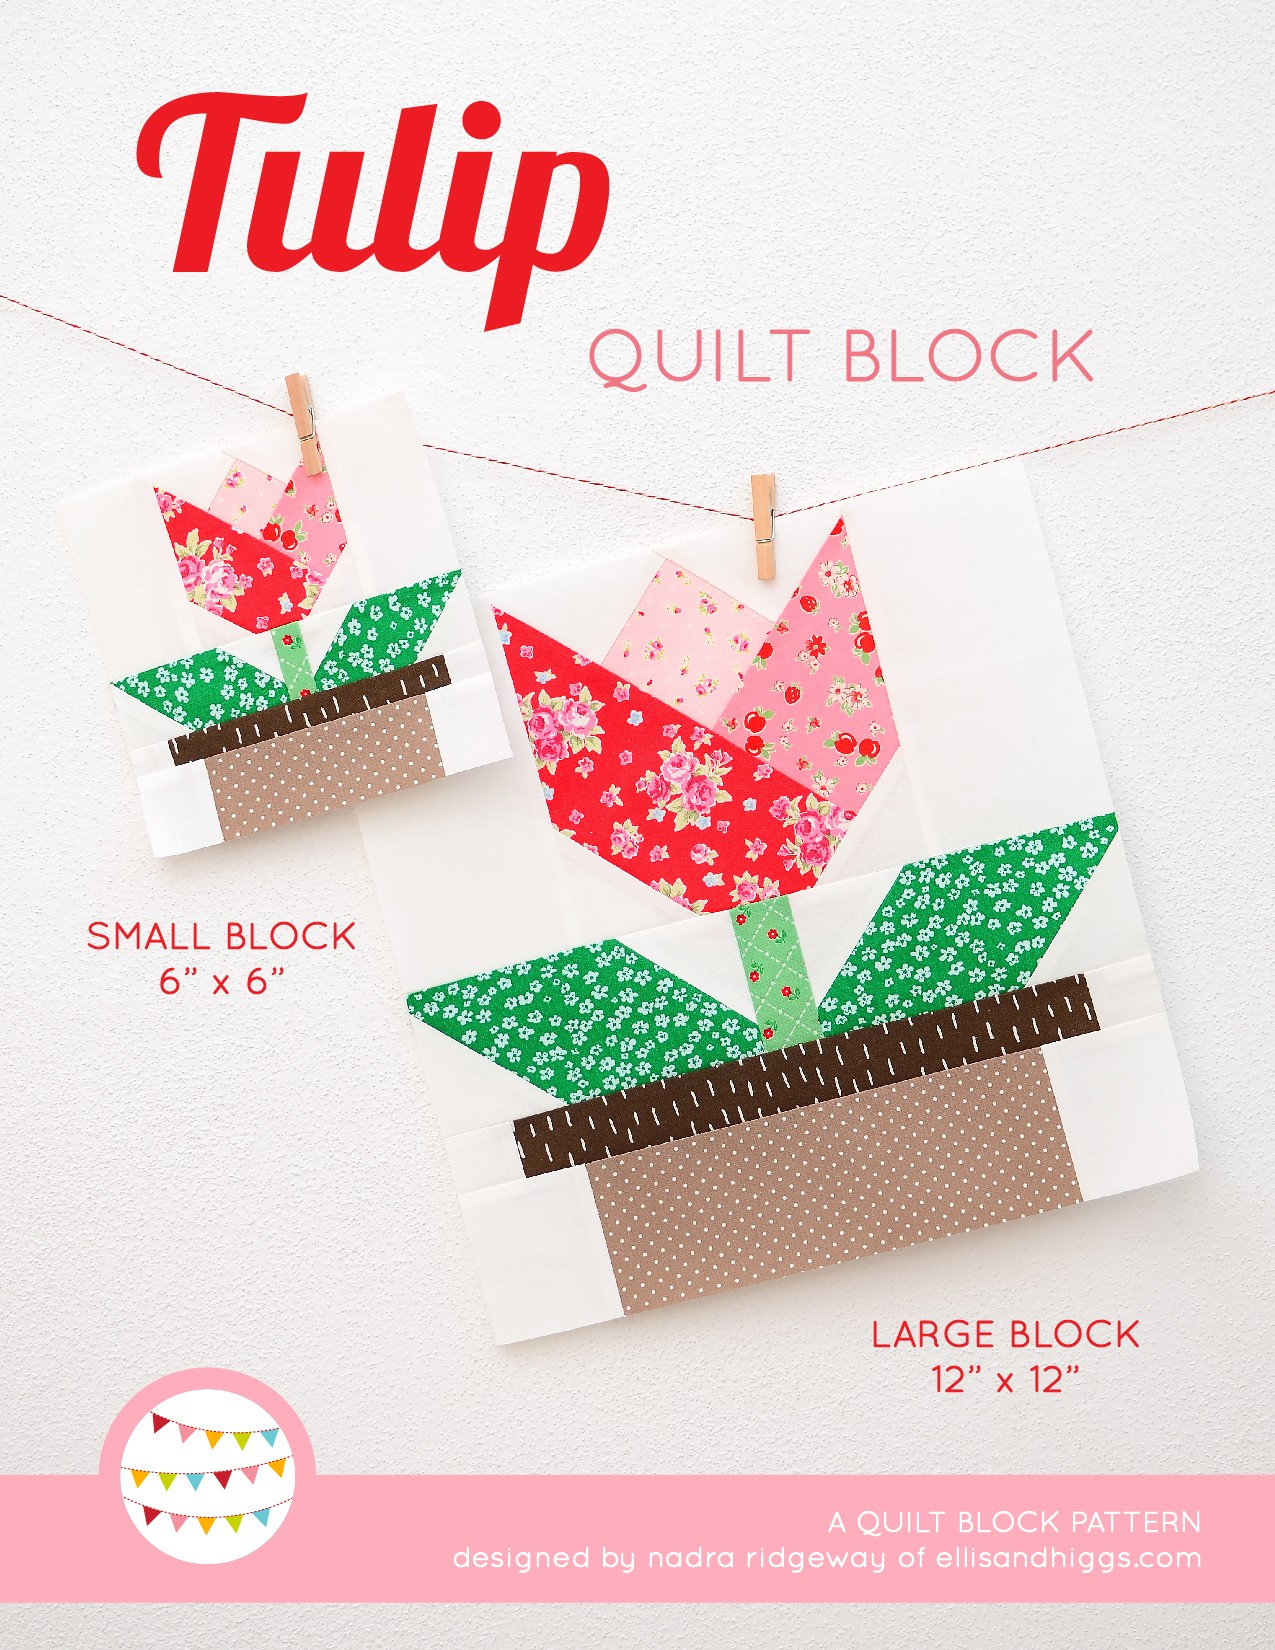 Tulip quilt blocks